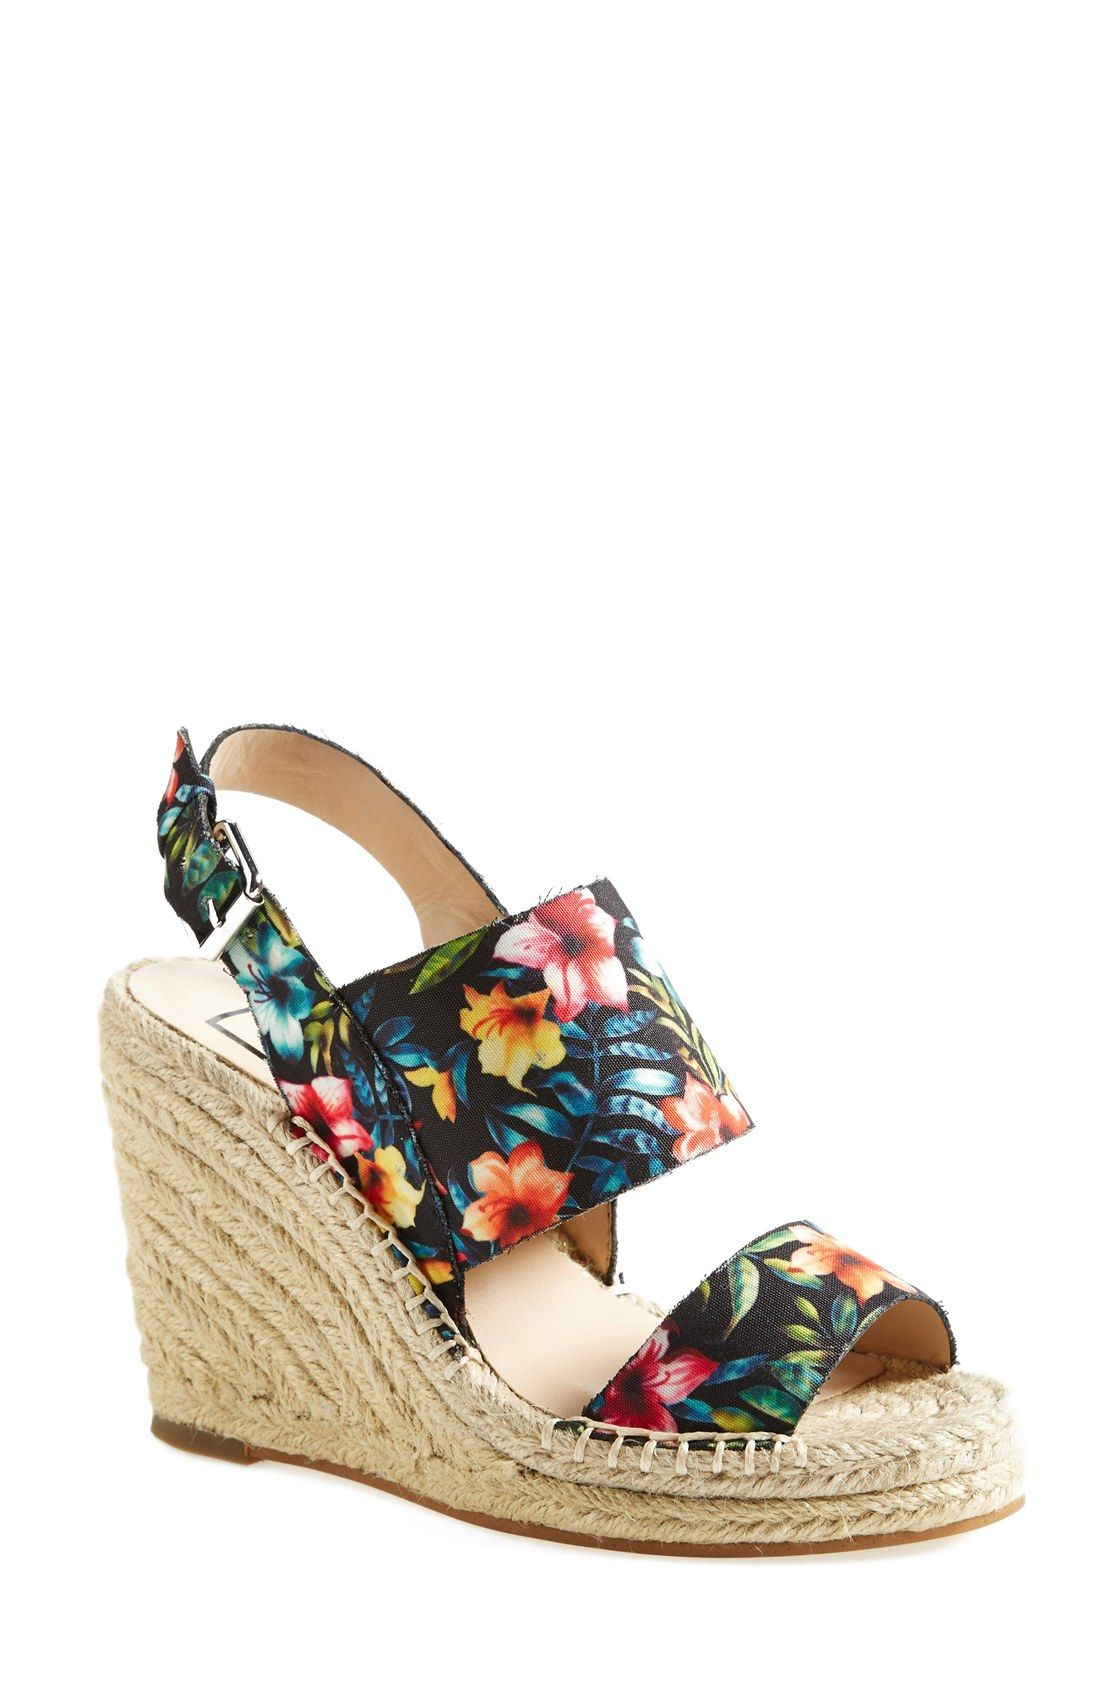 These floral wedge sandals are perfect for spring.